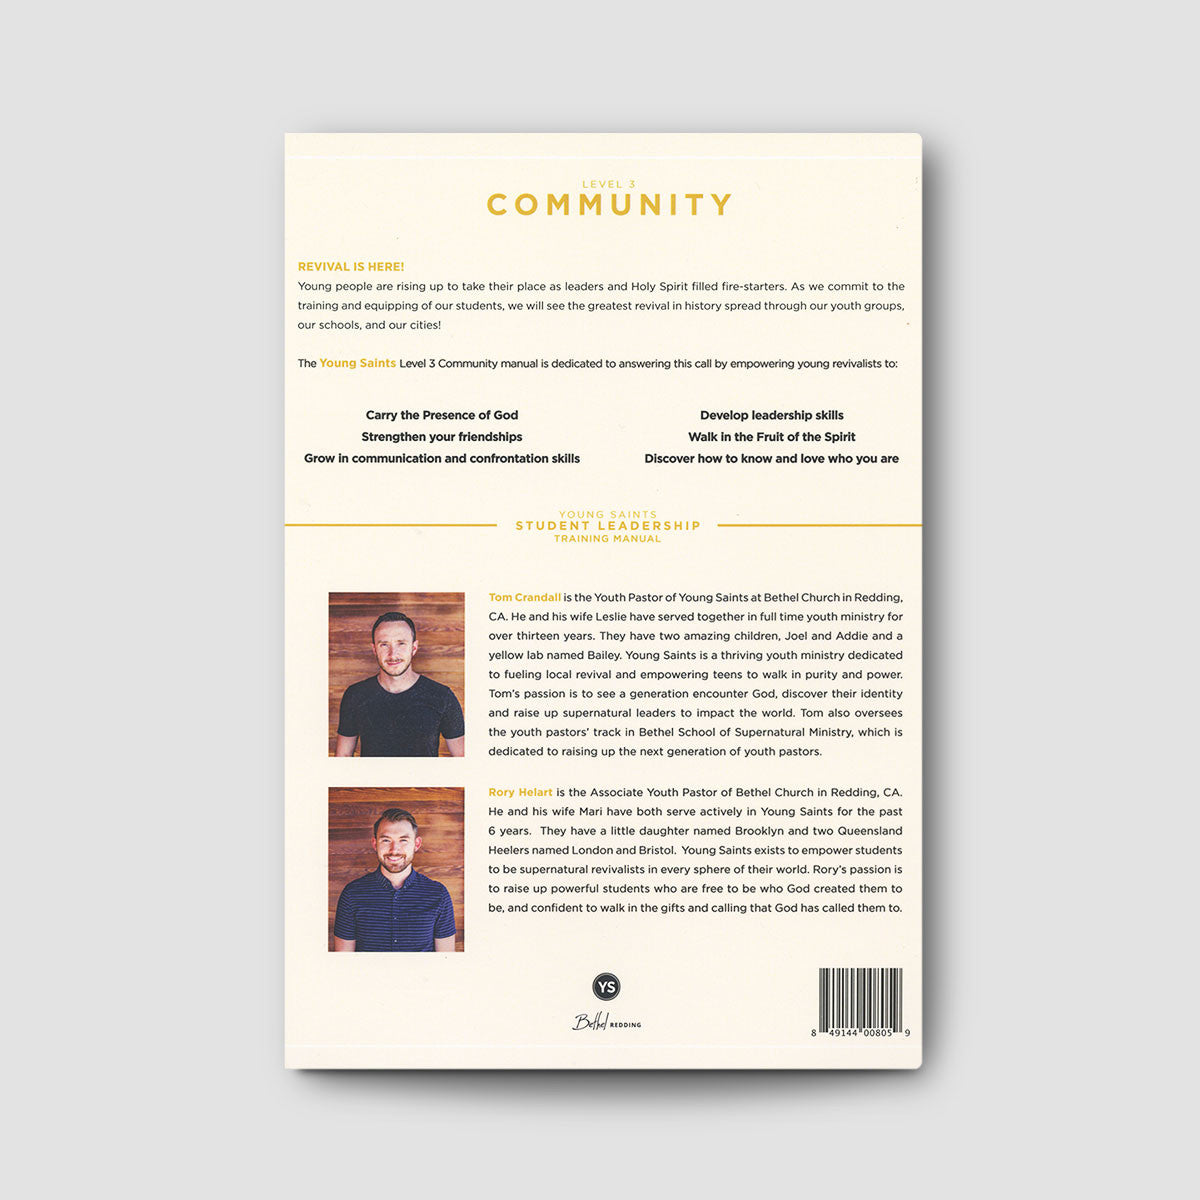 Student Leadership Team (SLT) Manual Level 3: Community